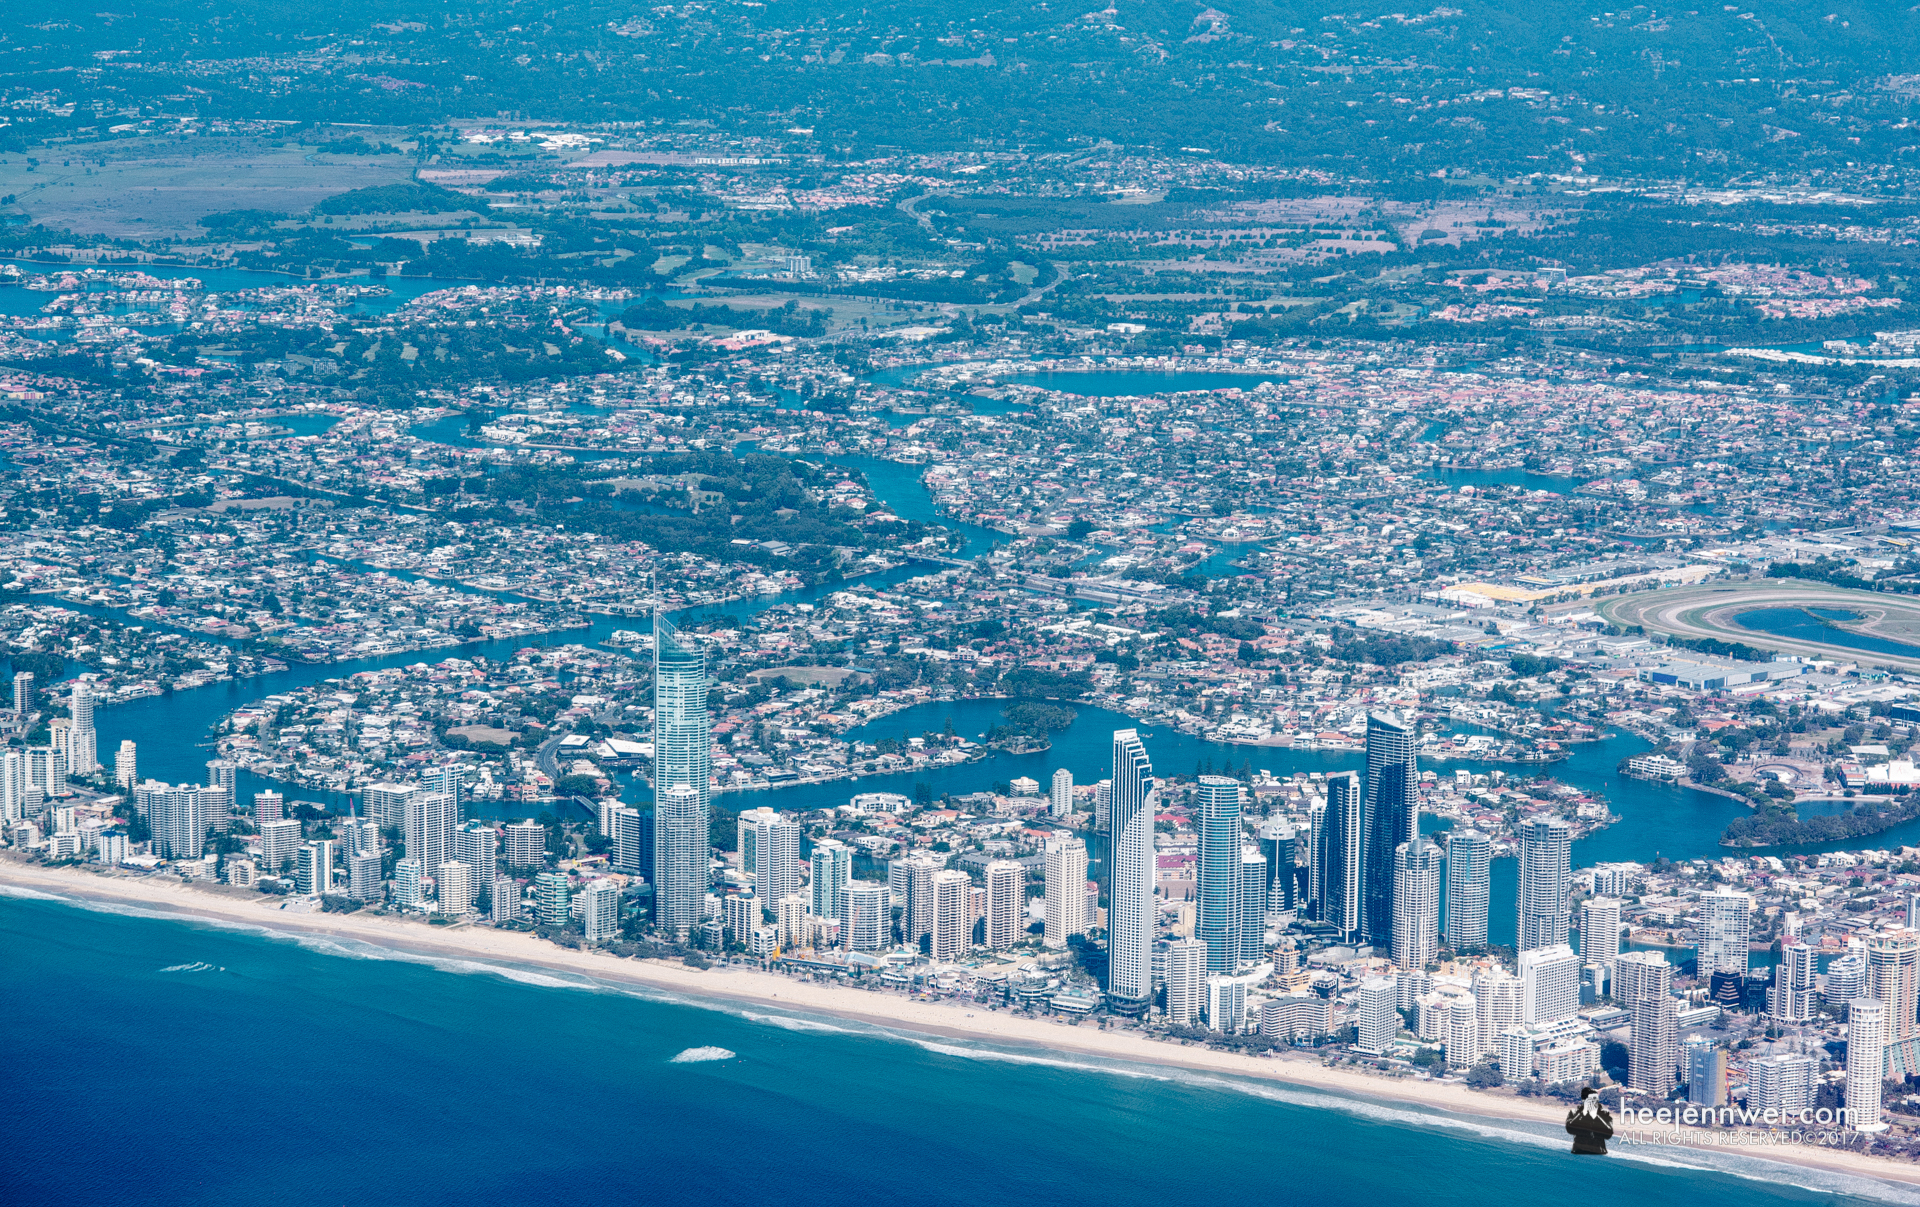 An aerial view of Gold Coast towered over by many high-rises.